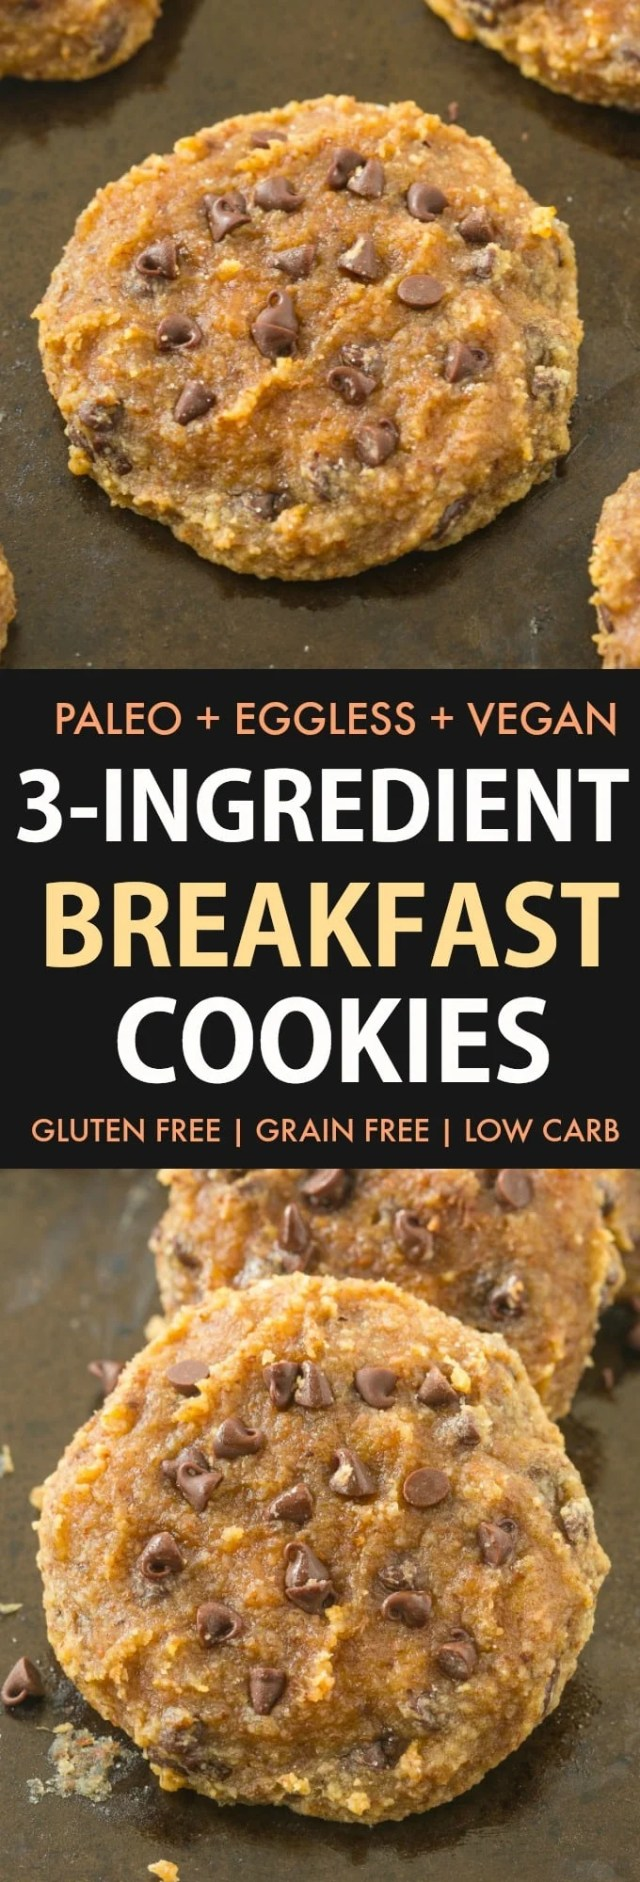 3 Ingredient Paleo Breakfast Cookies (Vegan, Gluten Free)